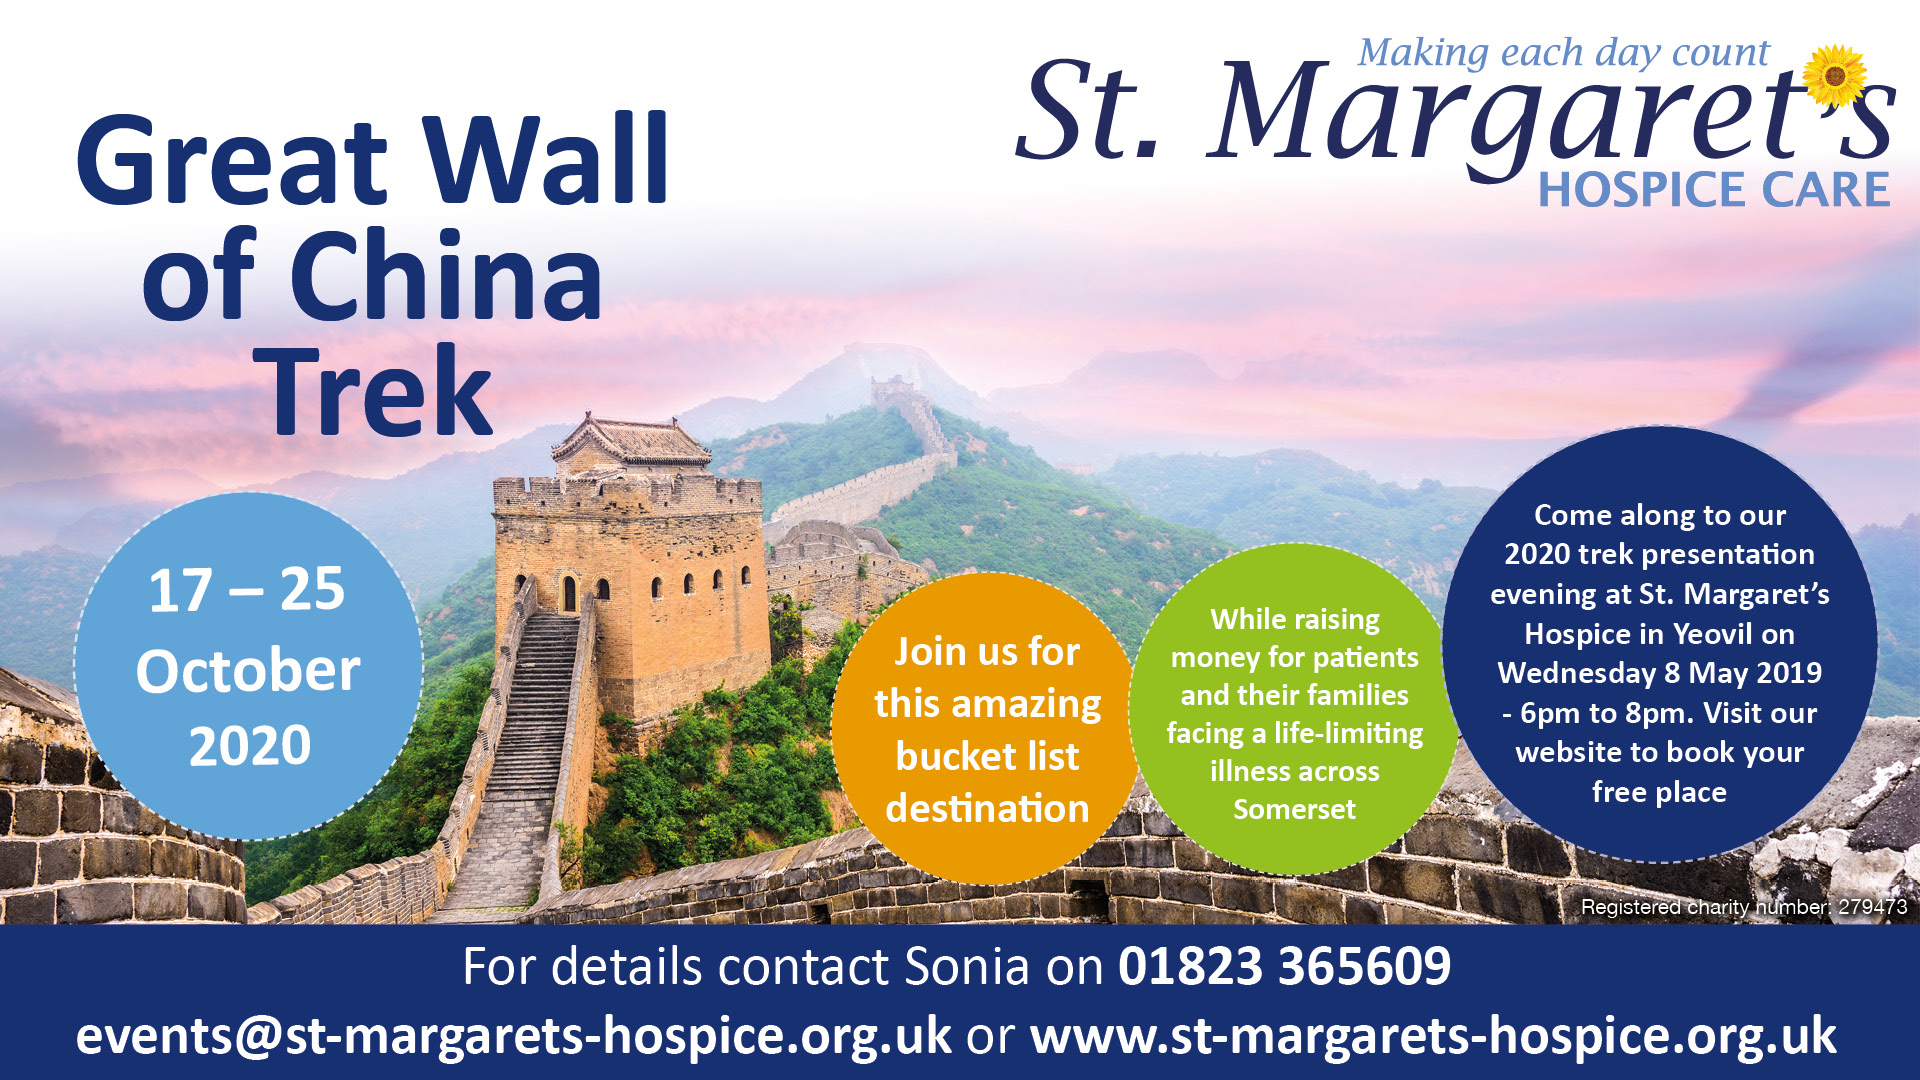 Great Wall of China Trek 2020